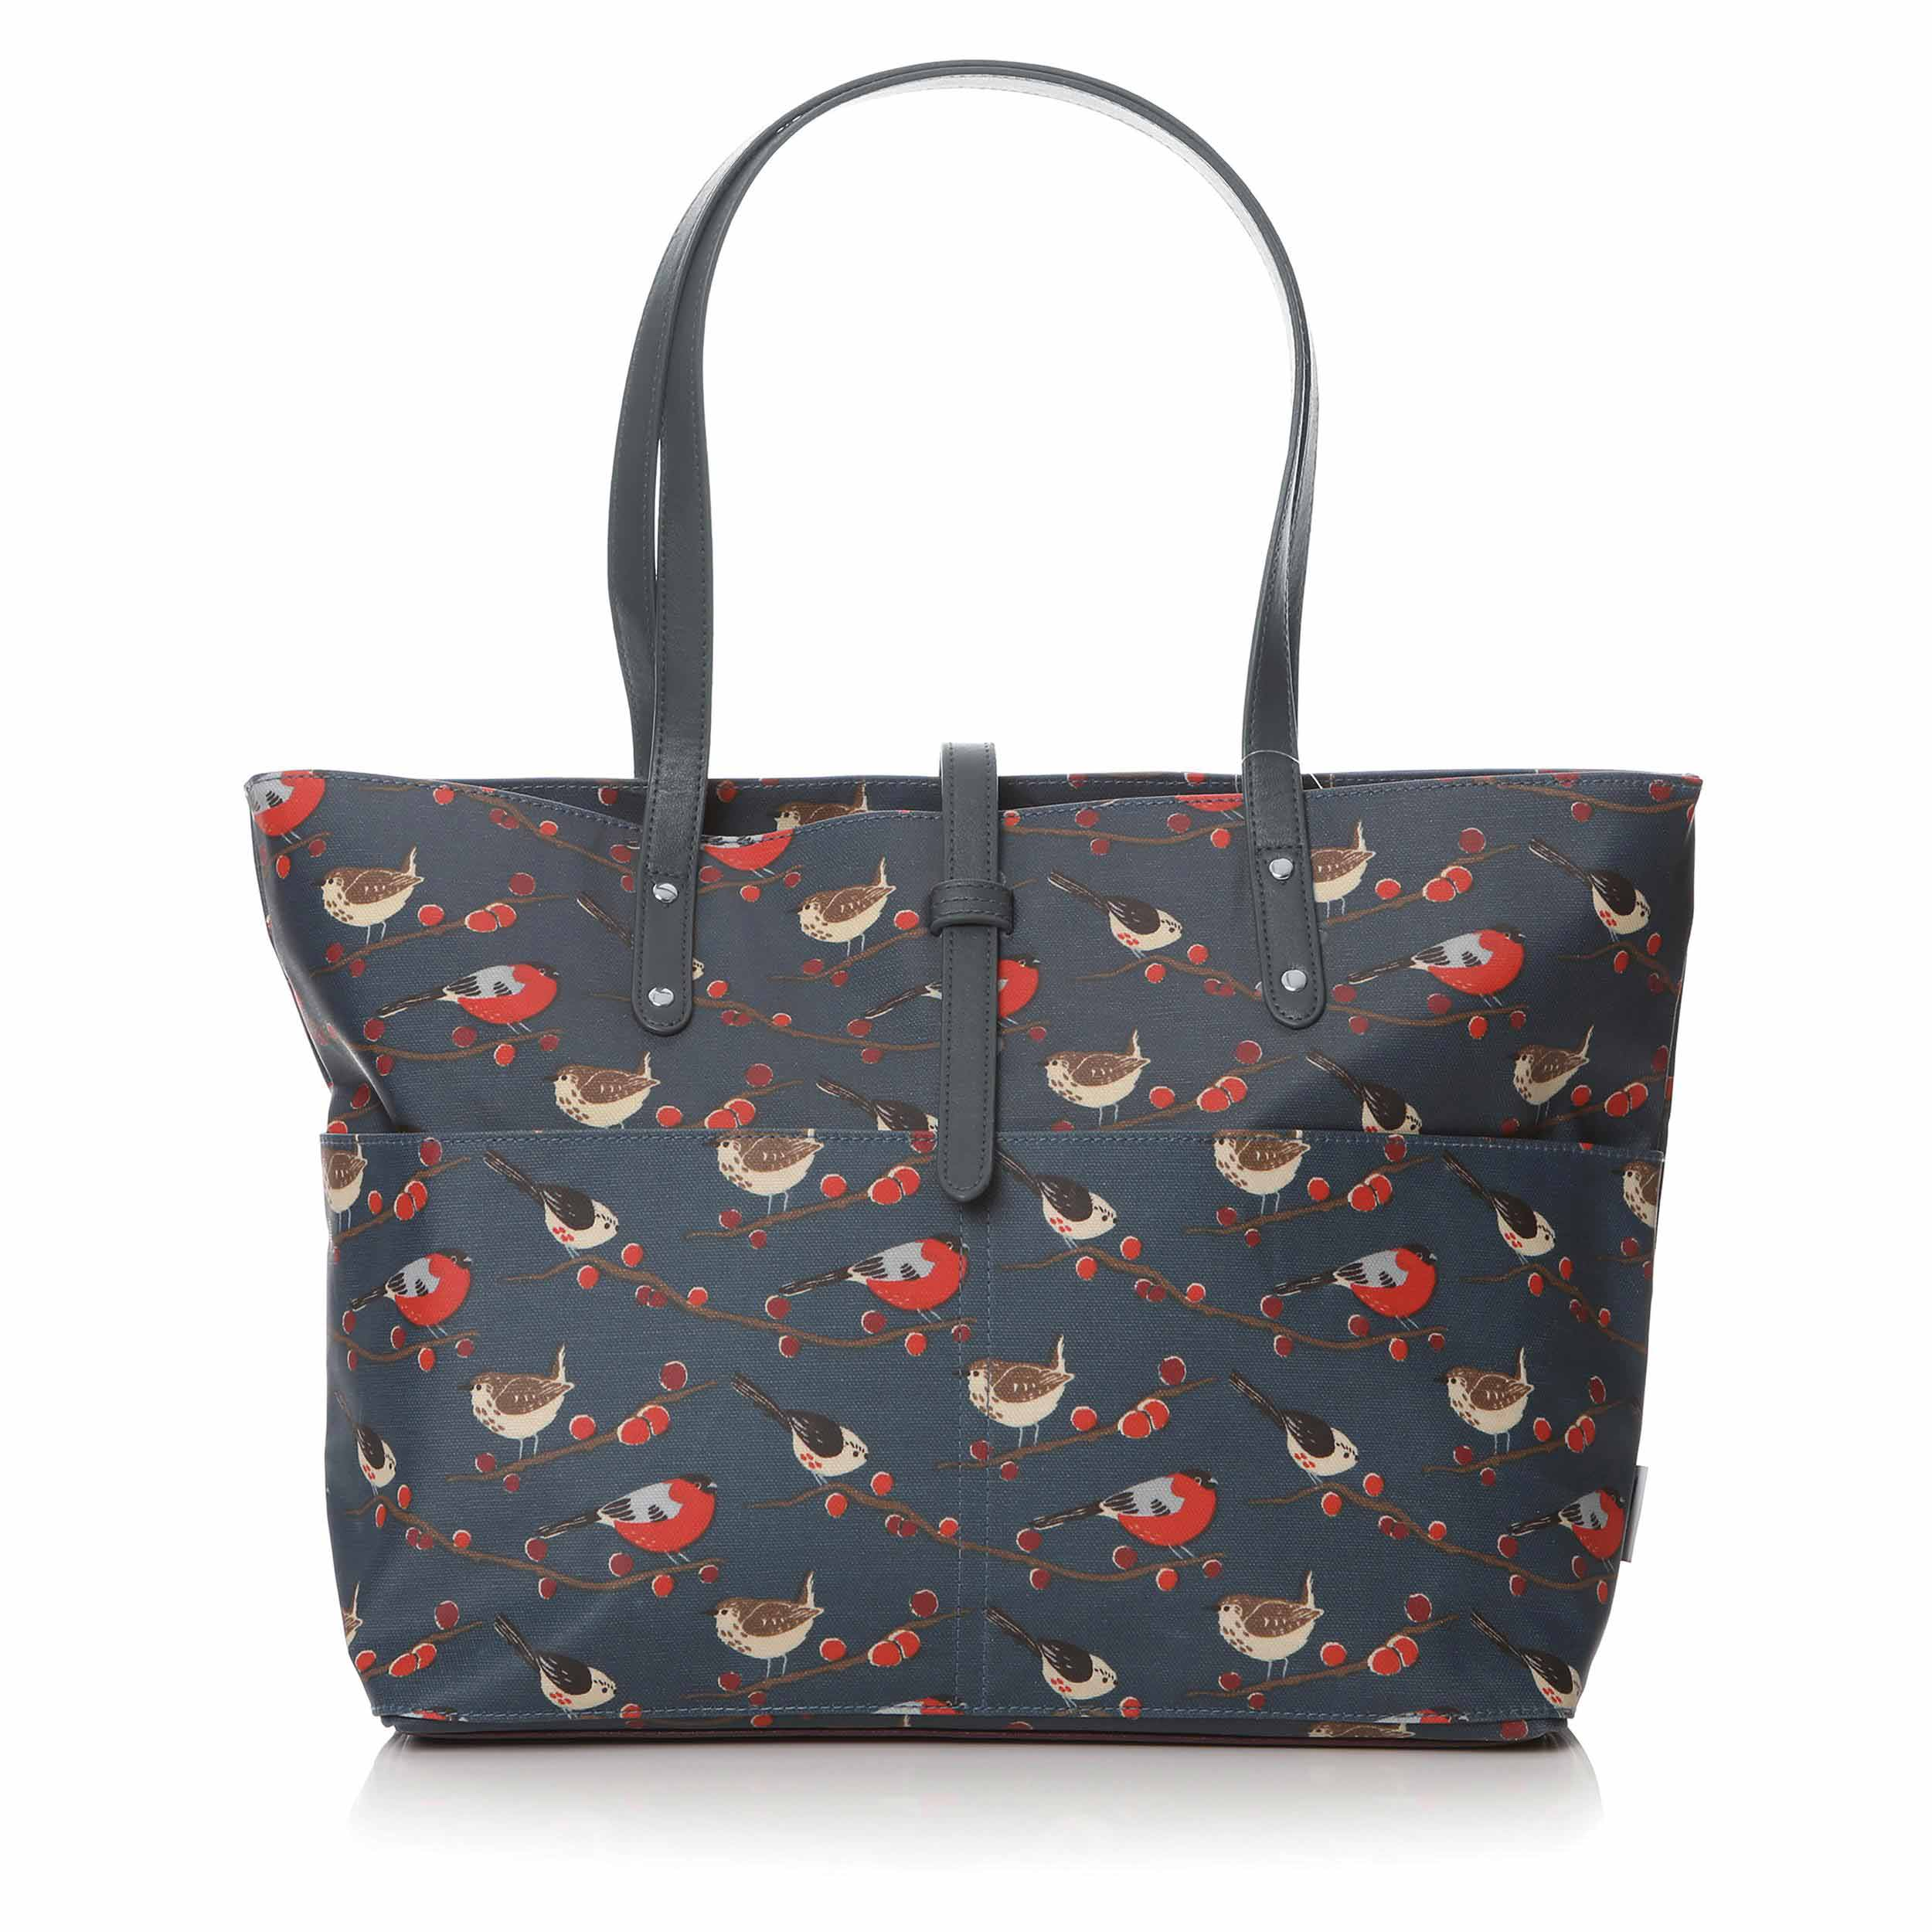 RSPB Hedgerow Birds Handbag